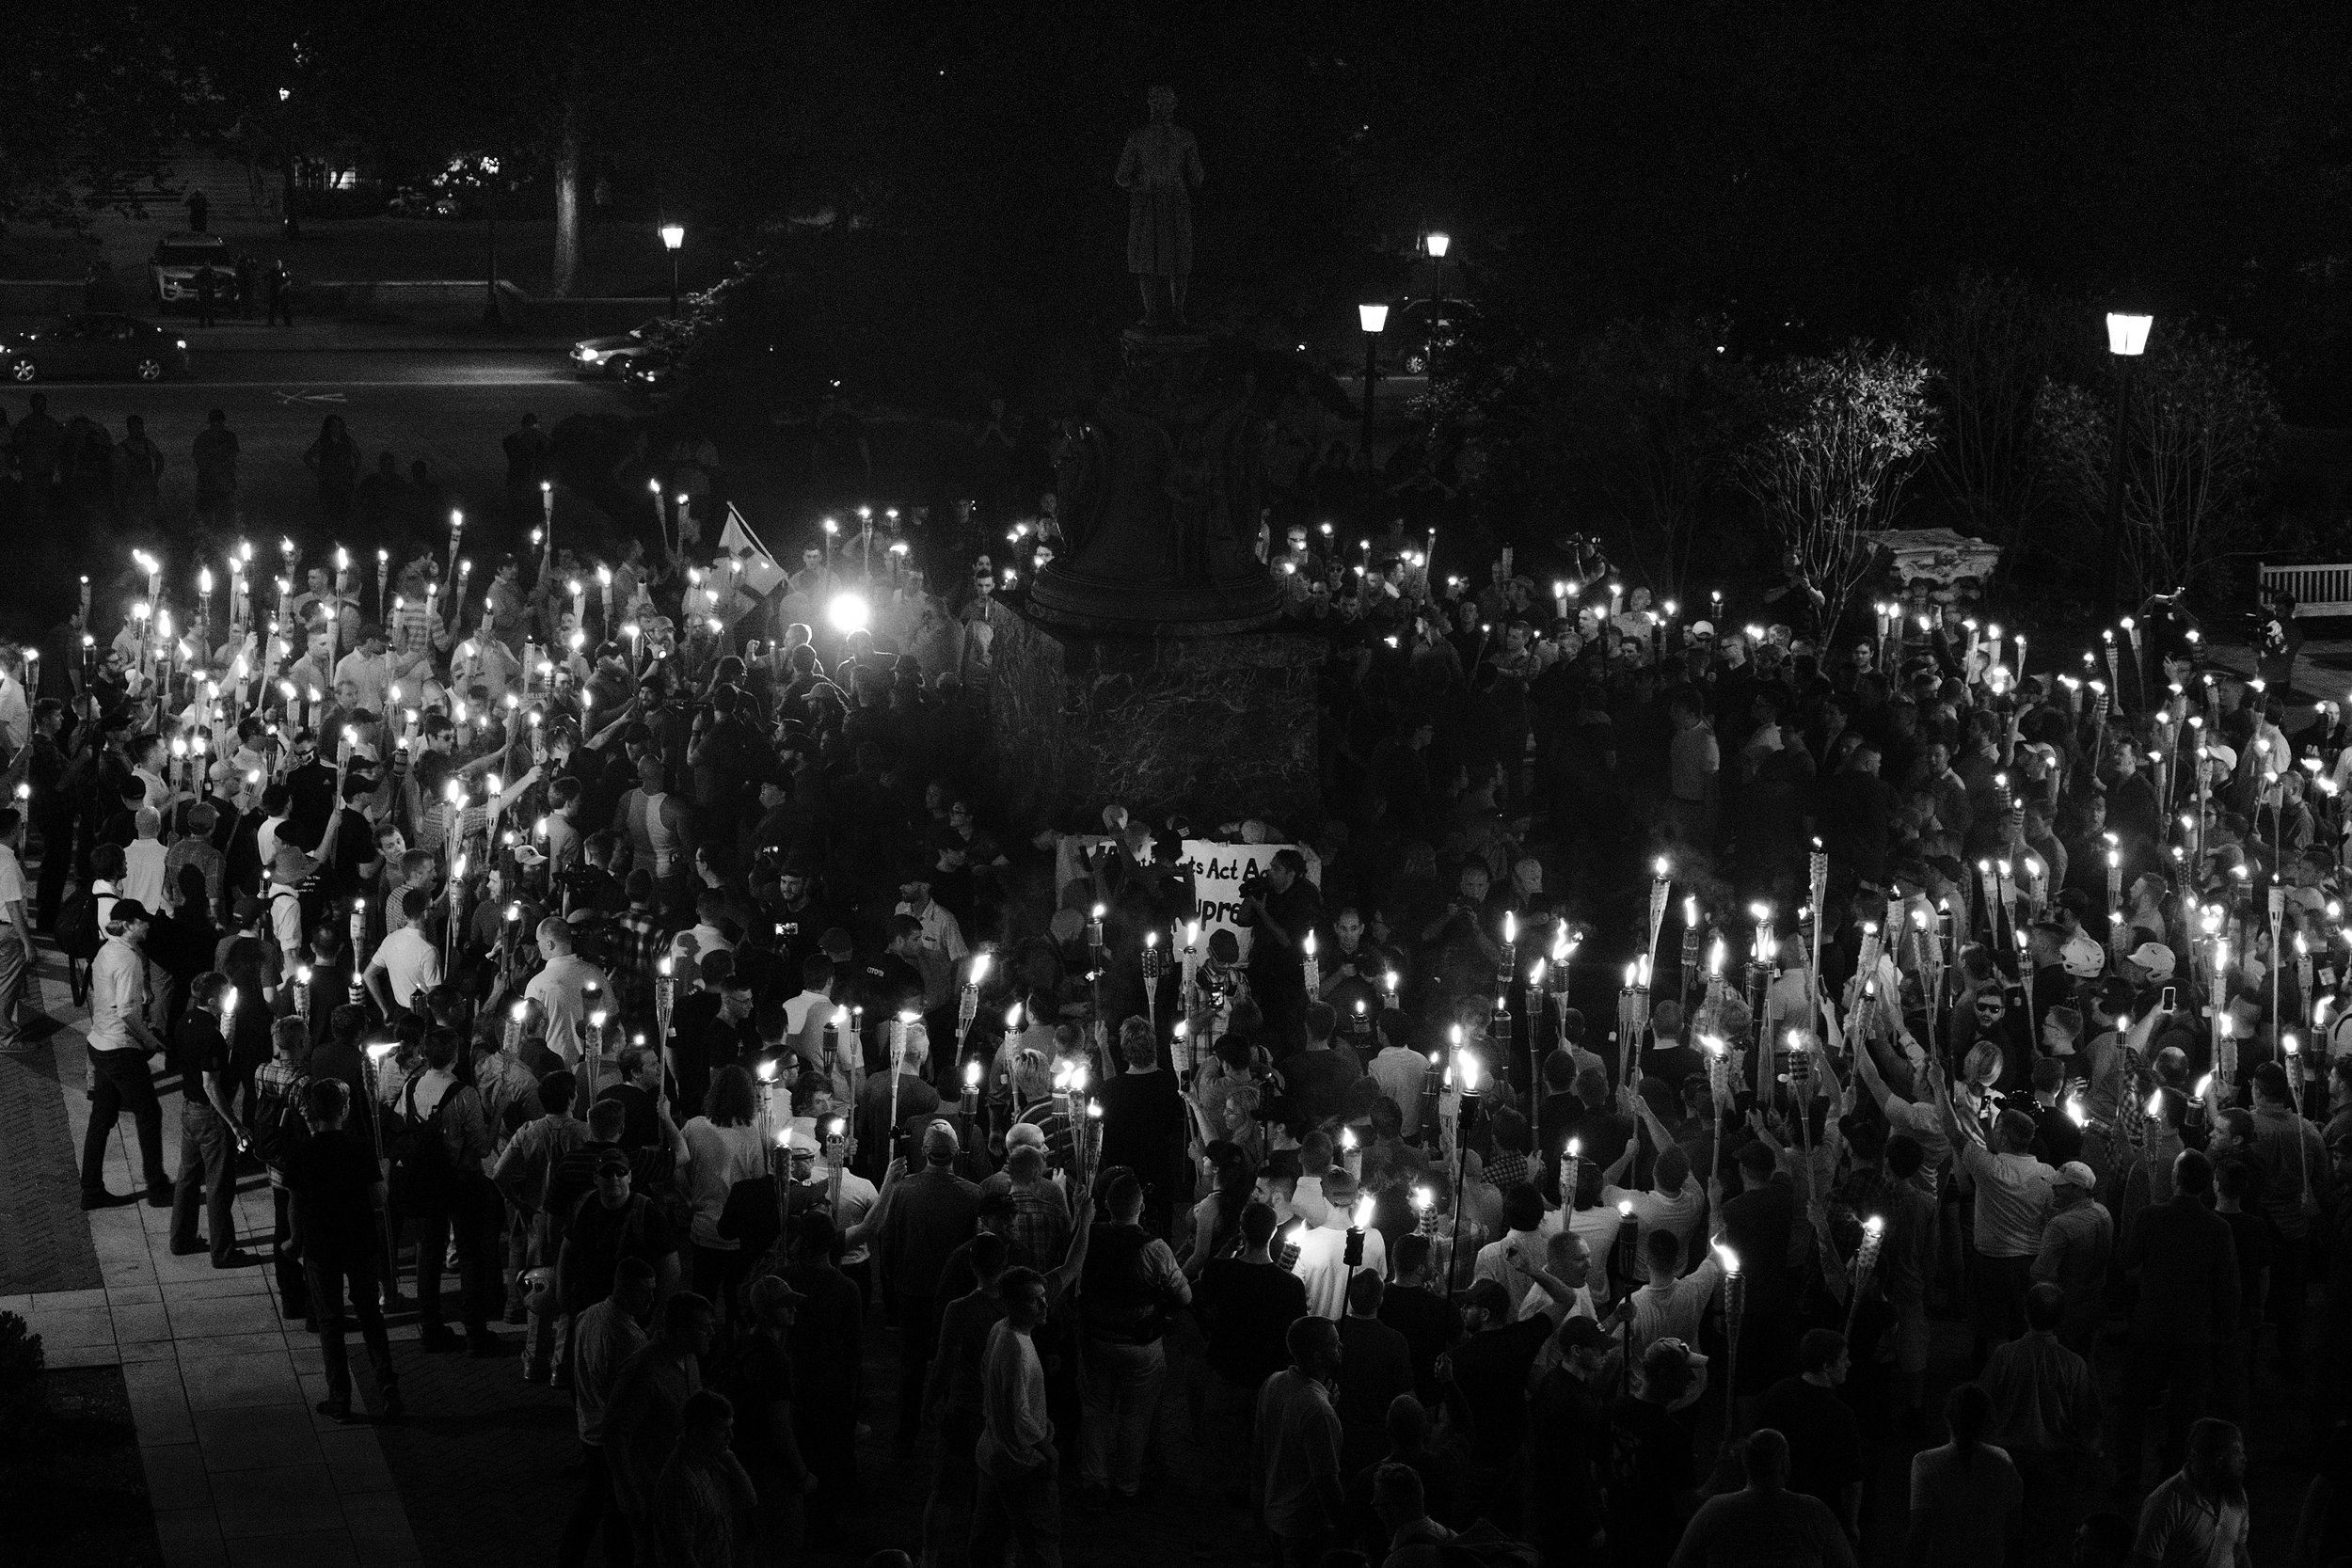 "The white supremacists marched through UVA campus until they reached the Thomas Jefferson monument where they surrounded a small group of protesters -- mostly college students -- who encircled the statue protectively. As the students chanted ""Black lives matter!"", the white supremacists attacked, beating the protesters with torches, drenching them with mace, and kicking them while they struggled to hold their ground.  Neither the Charlottesville police, nor the clergy and parishioners across the street moved to protect the protesters who -- only having the aid of a small group of stalwart anti-fascists -- were forced to flee."